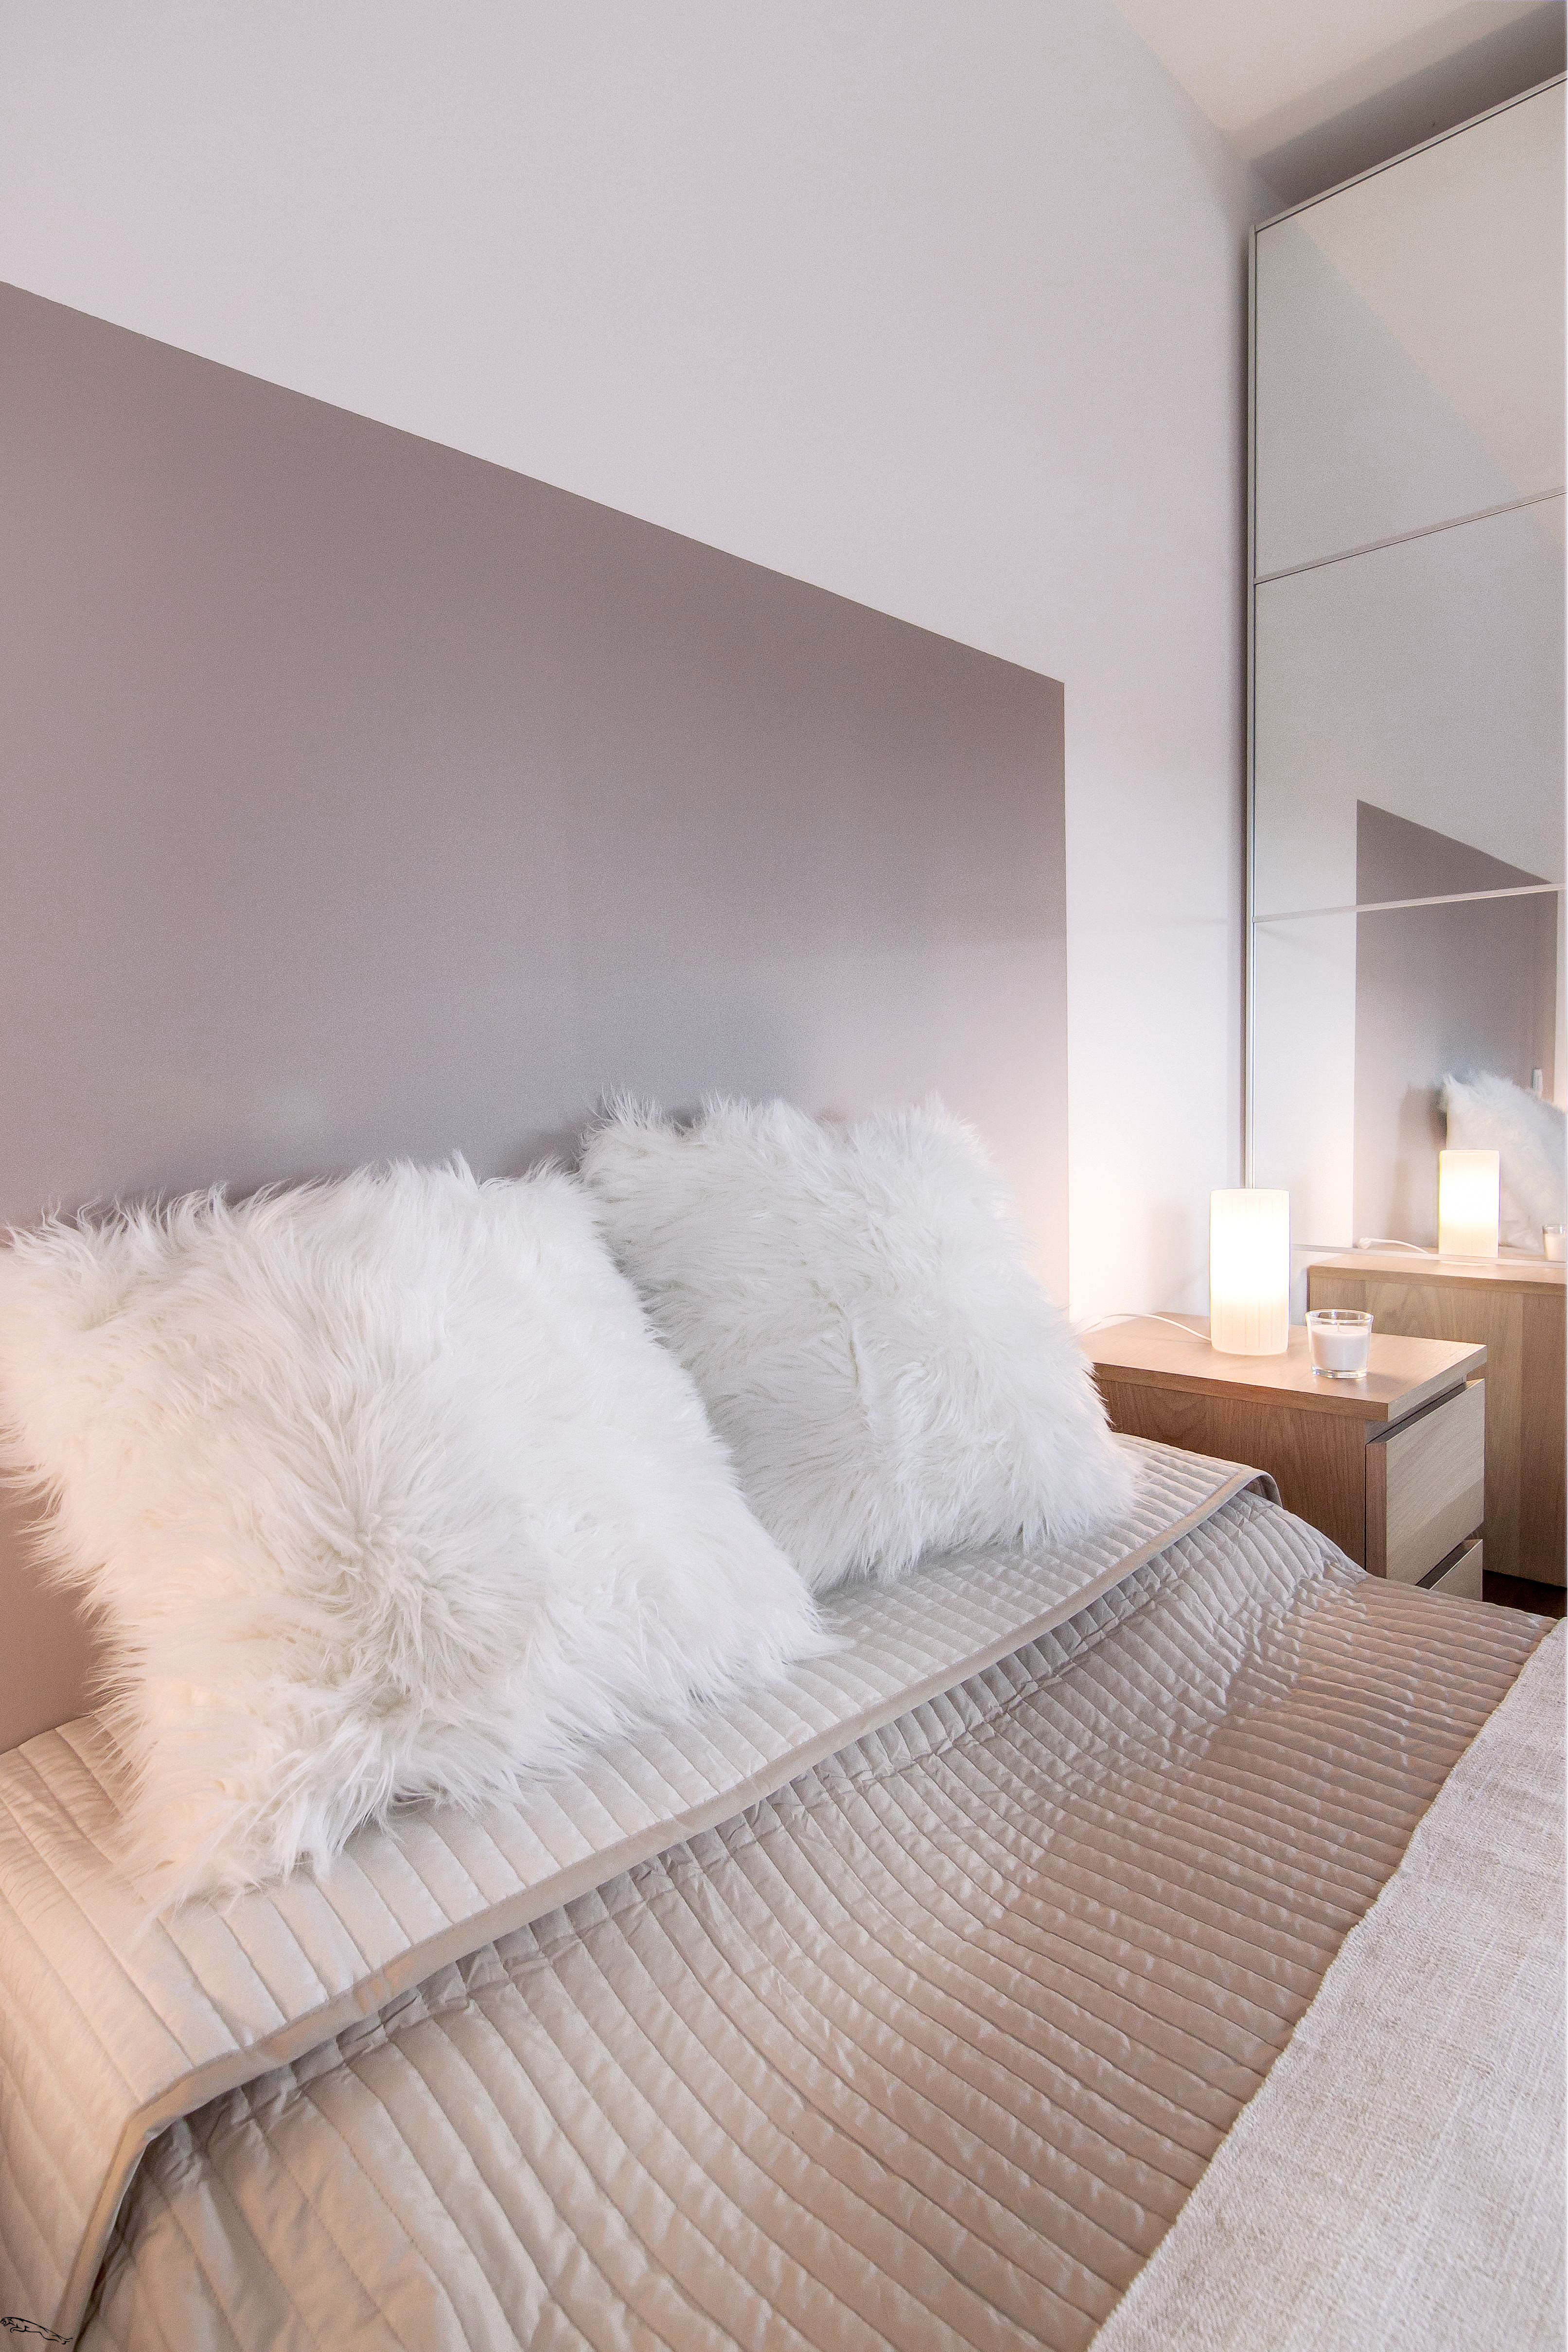 Chambre Cocooning Chambre Cocooning Taupe Beige Et Blanc Chambre Cosy Tete De Lit Peinture Diy Couleur Taupe In 2020 White Bedroom Cozy White Bedroom Cozy Bedroom